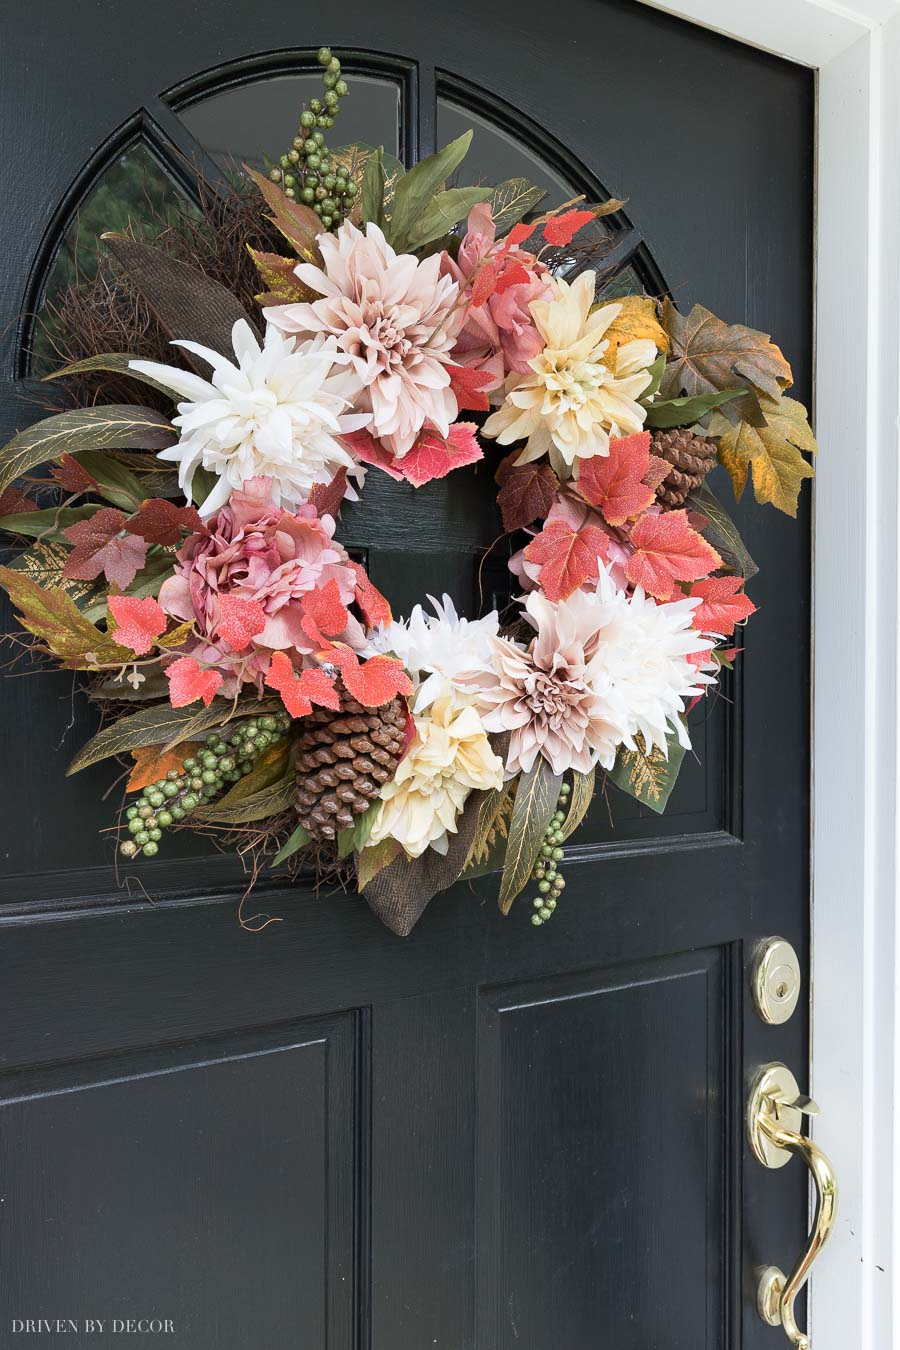 A gorgeous fall wreath for your front door - peonies, dahlias, pinecones, and leaves!